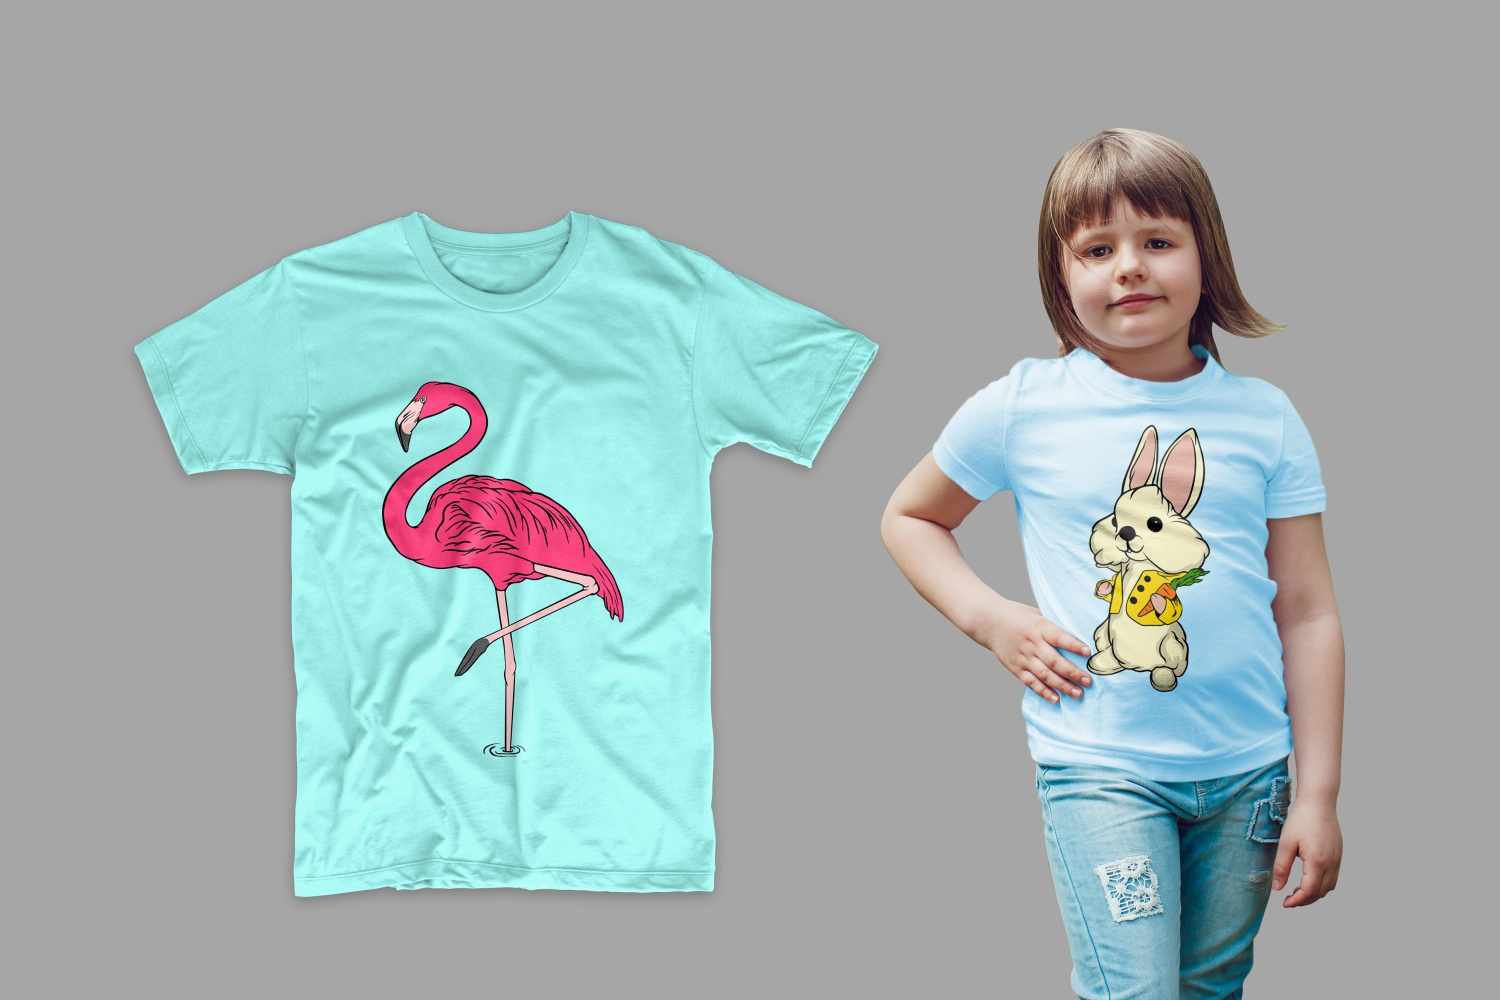 T-shirts with flamingo and rabbit with carrot.